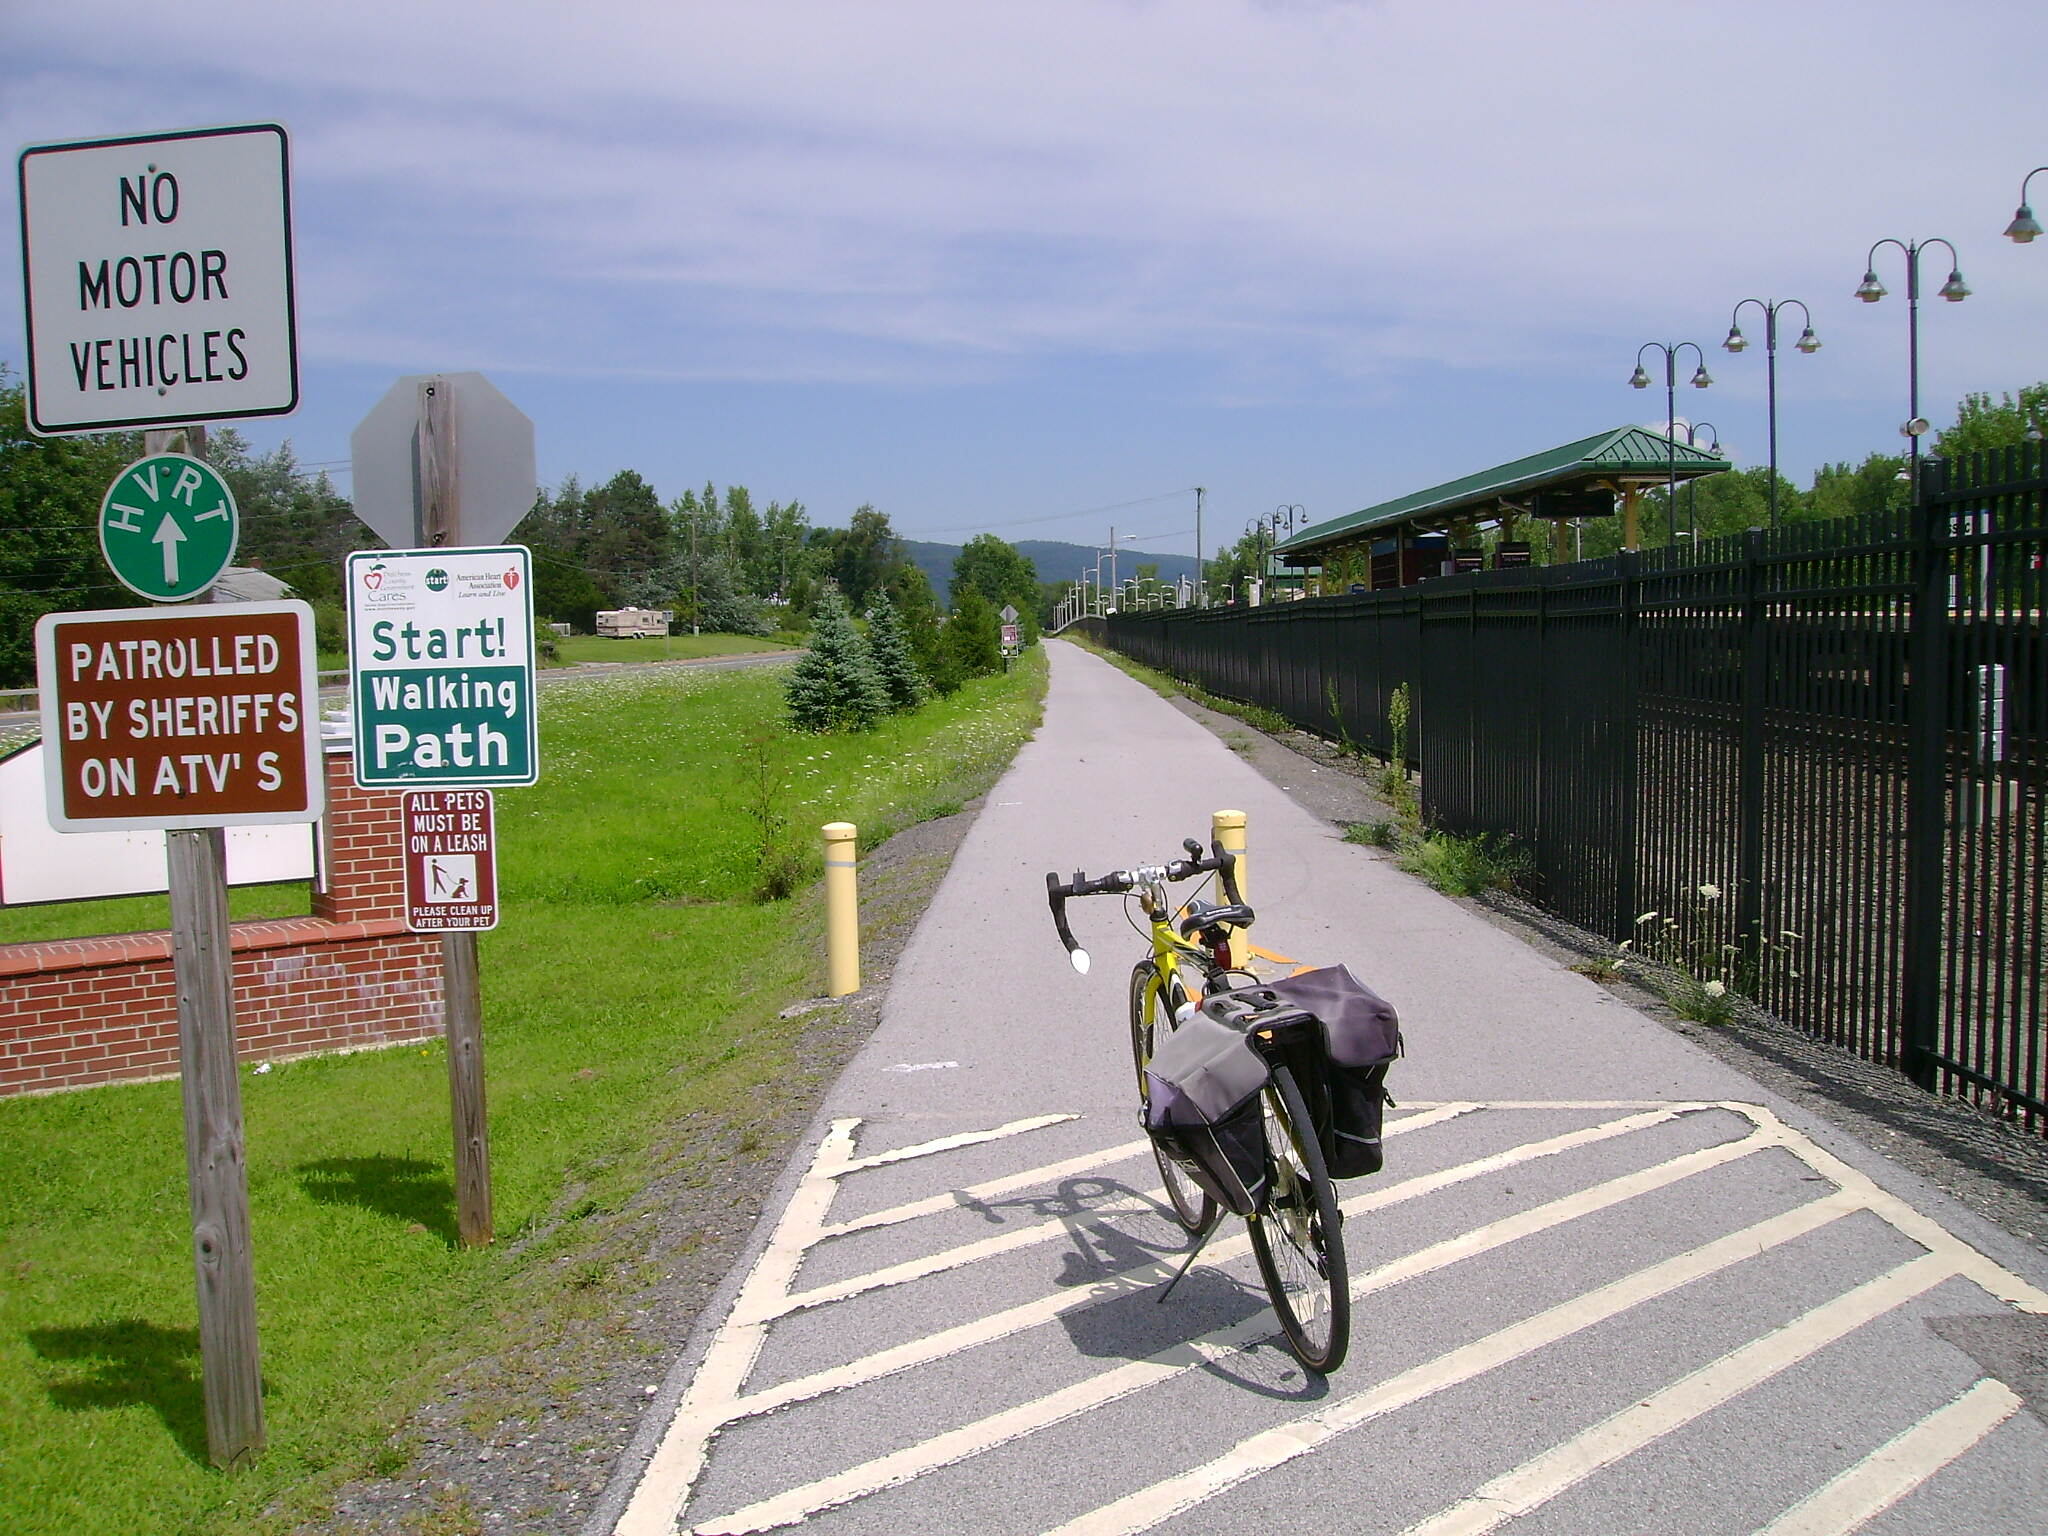 Harlem Valley Rail Trail Wassaic, NY. End of the line at the Wassaic Railroad Station.